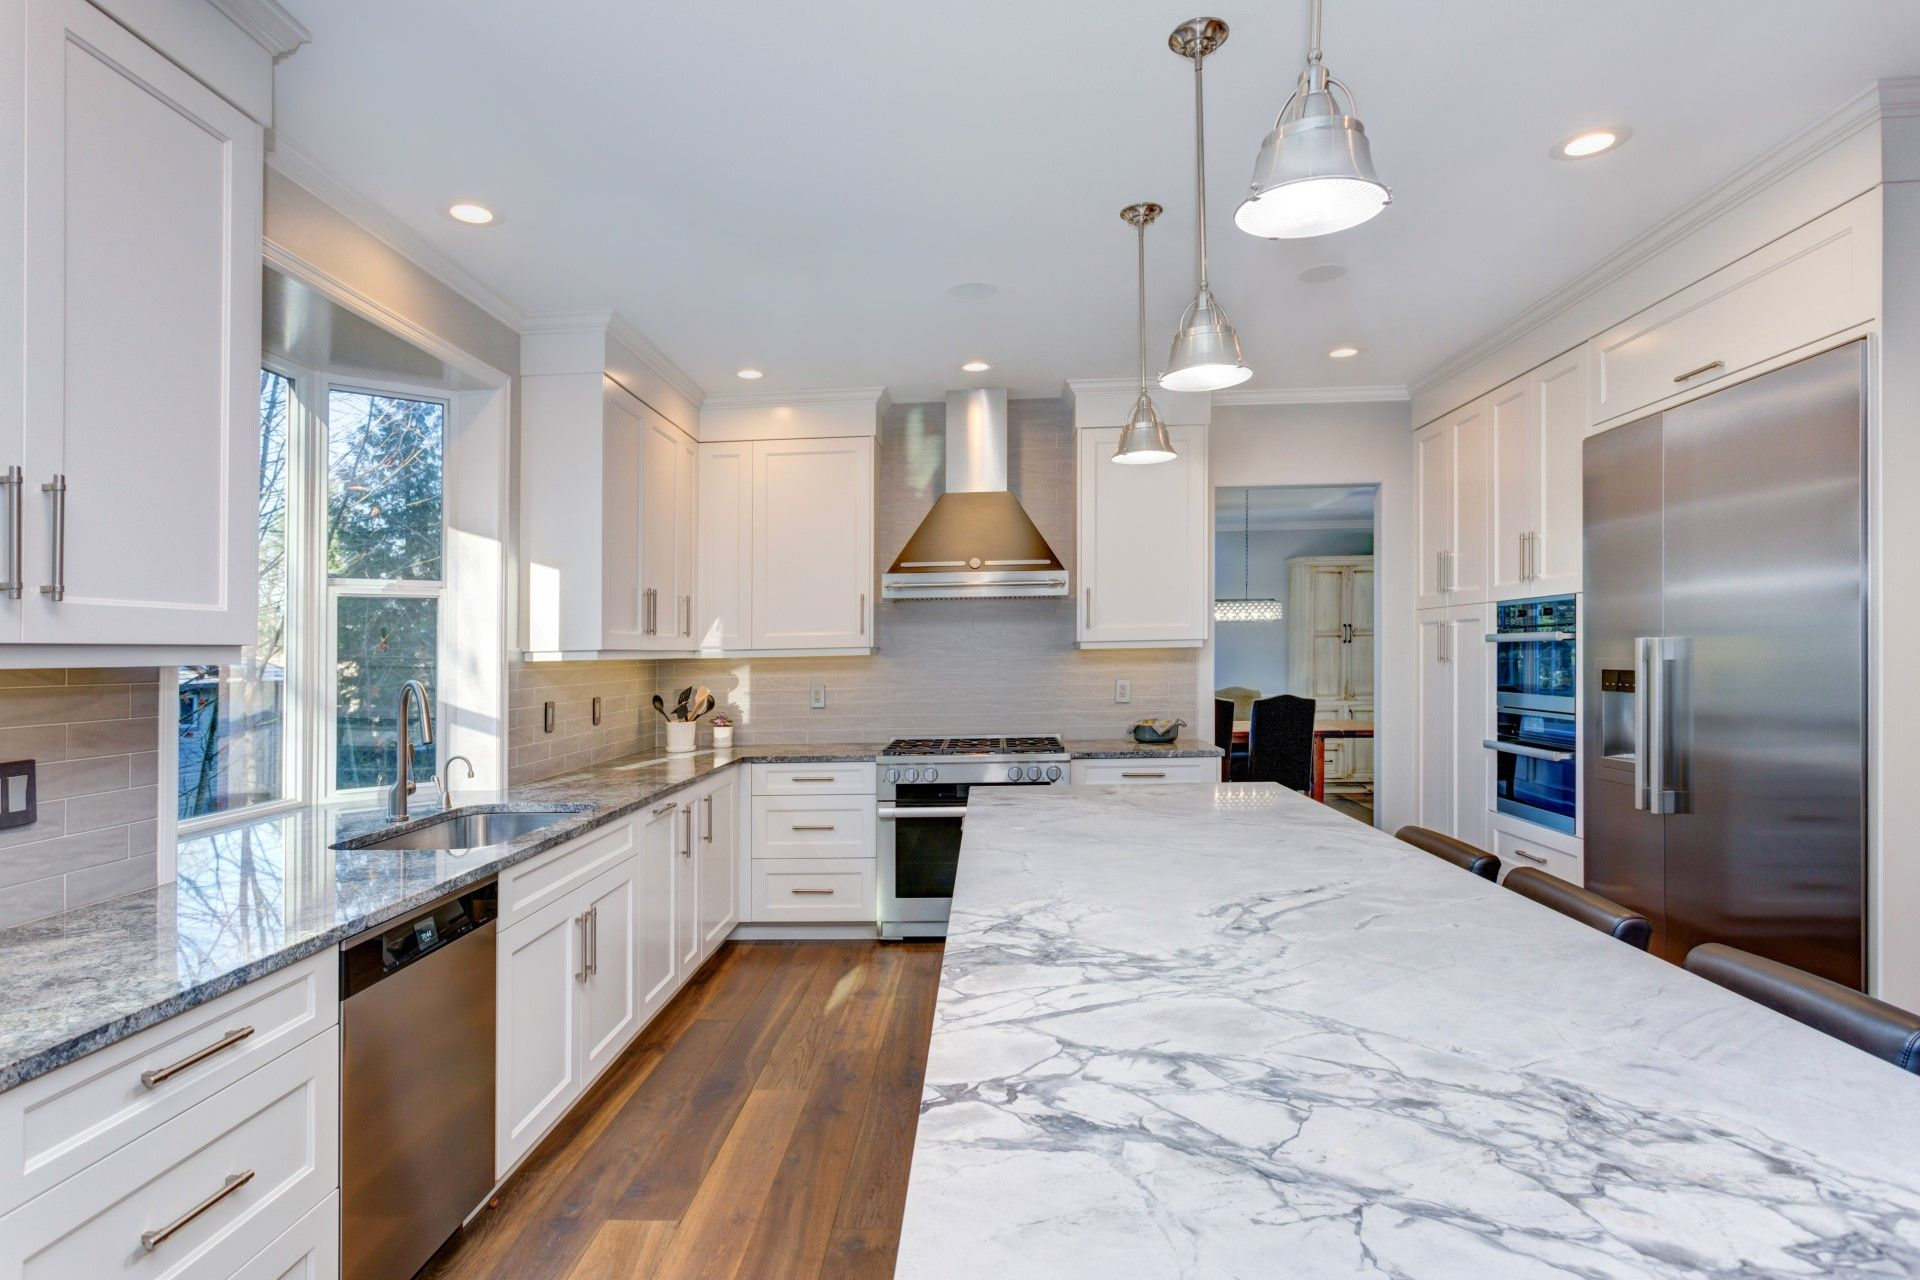 Granite Liquidators Is A Denver Wholesale Granite Quartzite And Marble Slab Supplier And We Have Helped P Luxury Homes Interior Marble Countertops Countertops